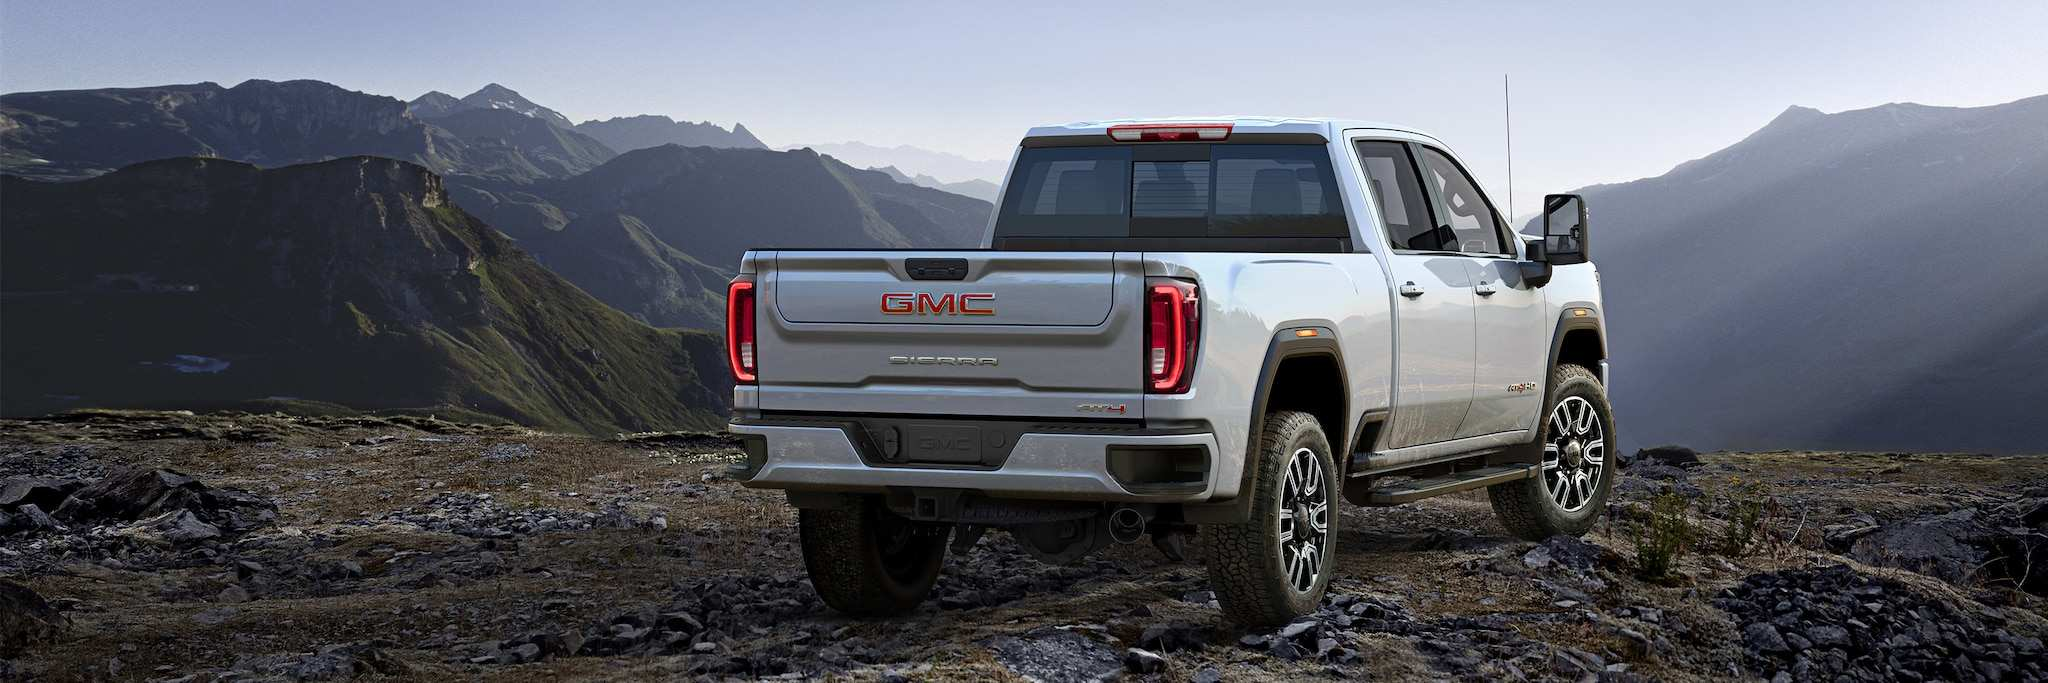 72 Gallery of 2020 Gmc Sierra 2500 Engine Options Price for 2020 Gmc Sierra 2500 Engine Options